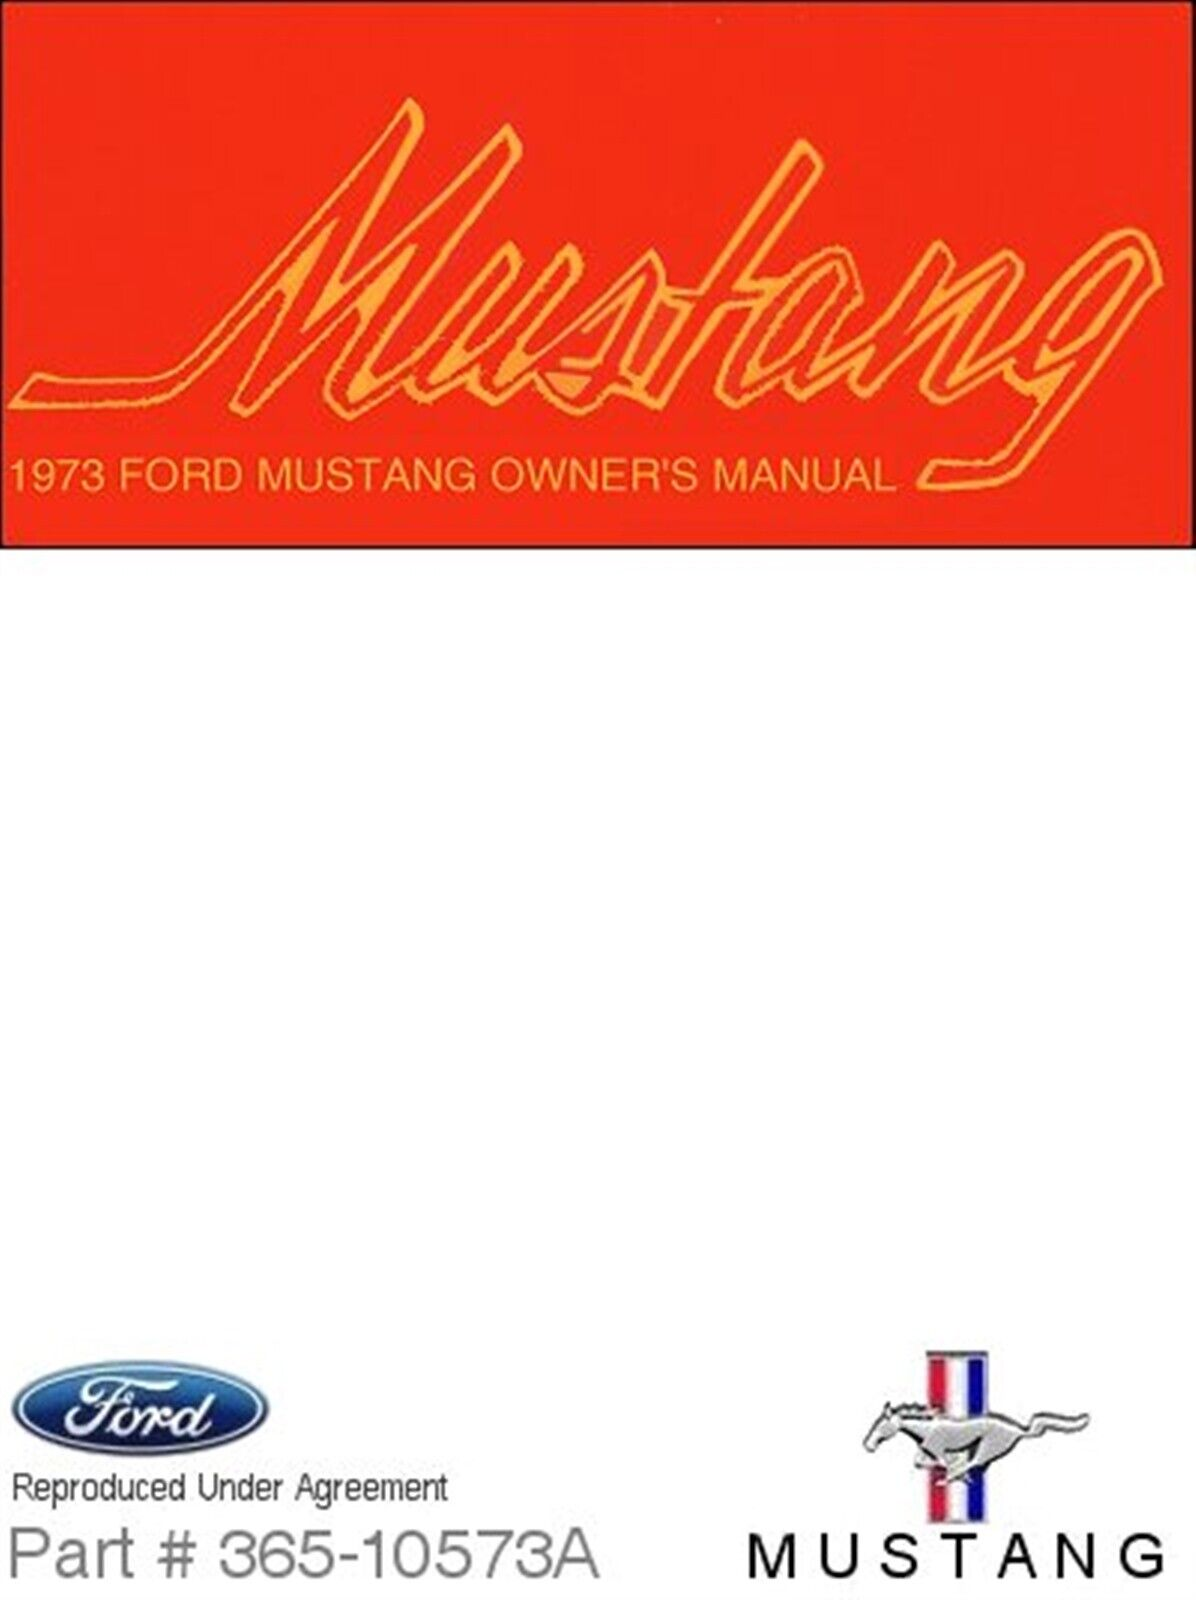 1973 Ford Mustang Owner's Manual